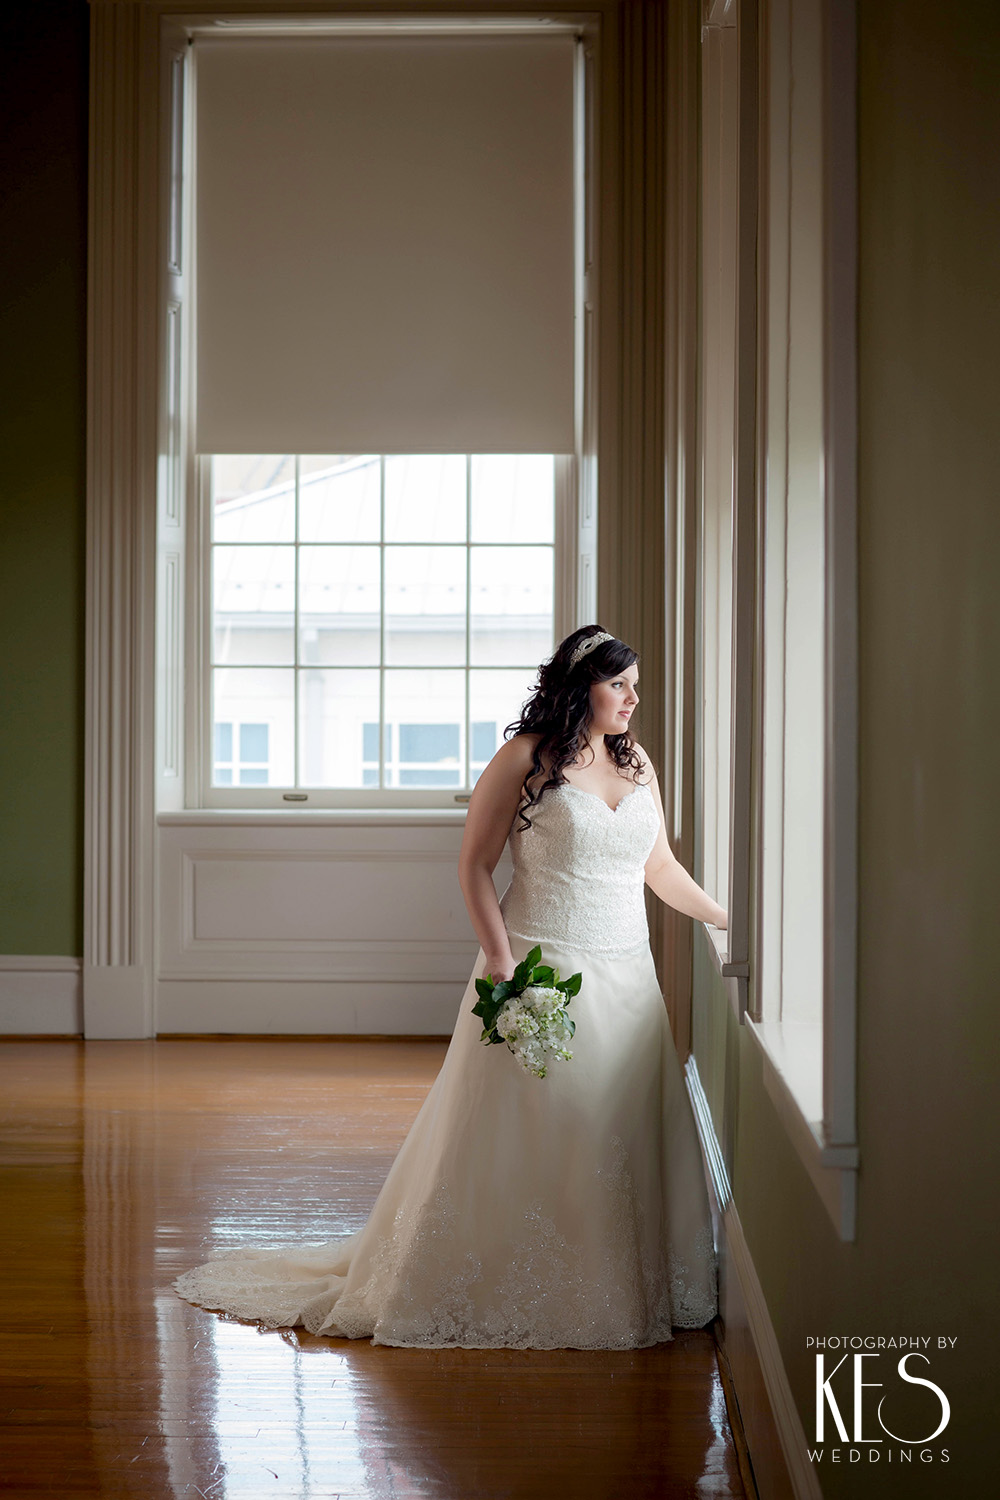 Old_State_House_Bridals_KESWeddings_2.JPG